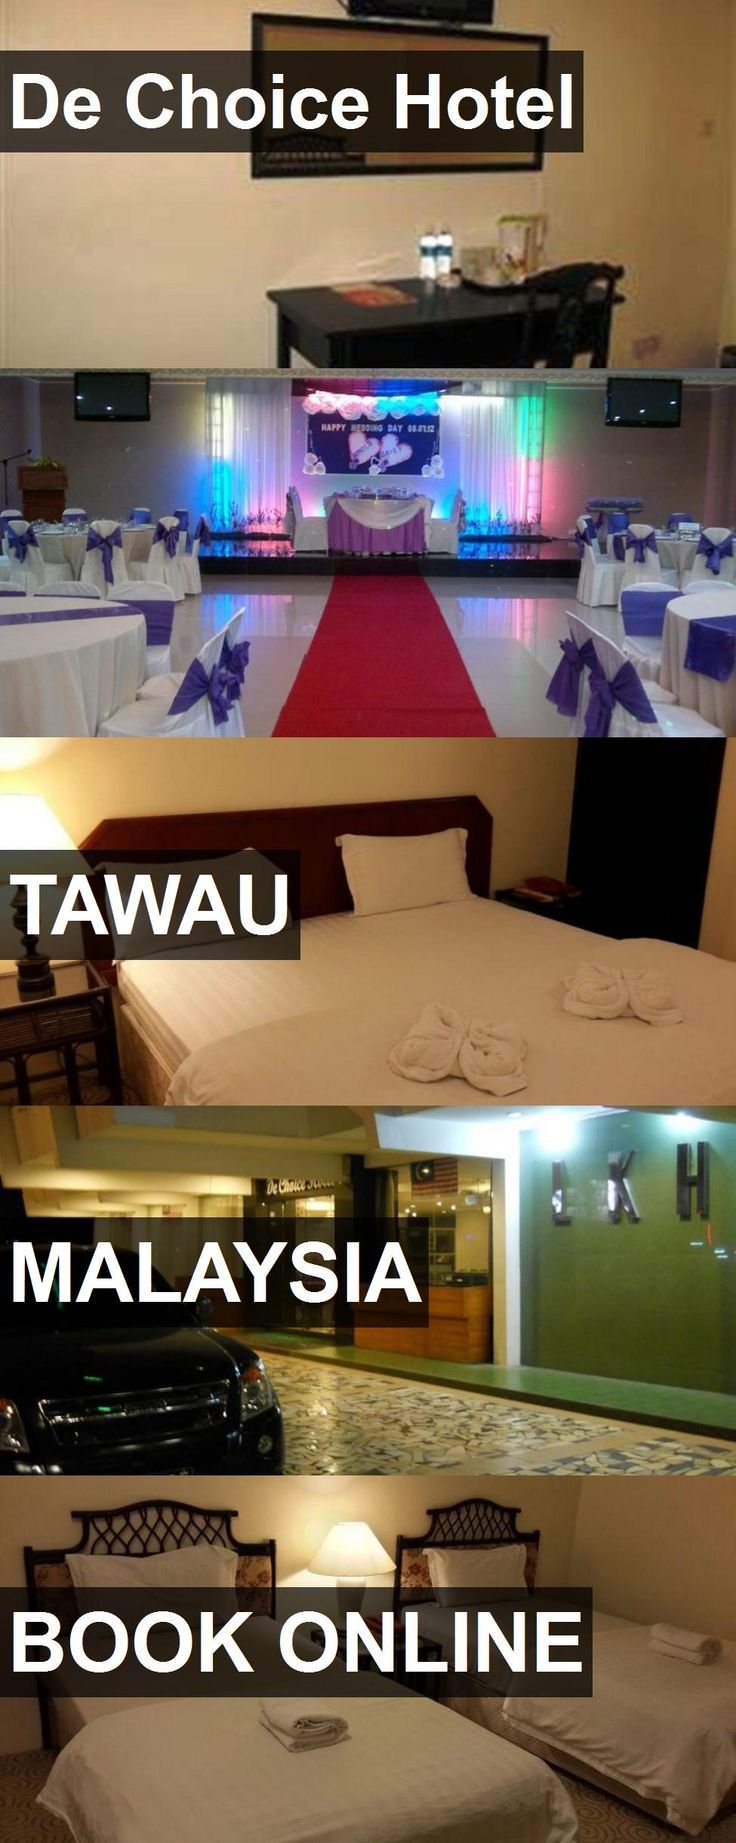 Hotel De Choice Hotel in Tawau, Malaysia. For more information, photos, reviews and best prices please follow the link. #Malaysia #Tawau #DeChoiceHotel #hotel #travel #vacation